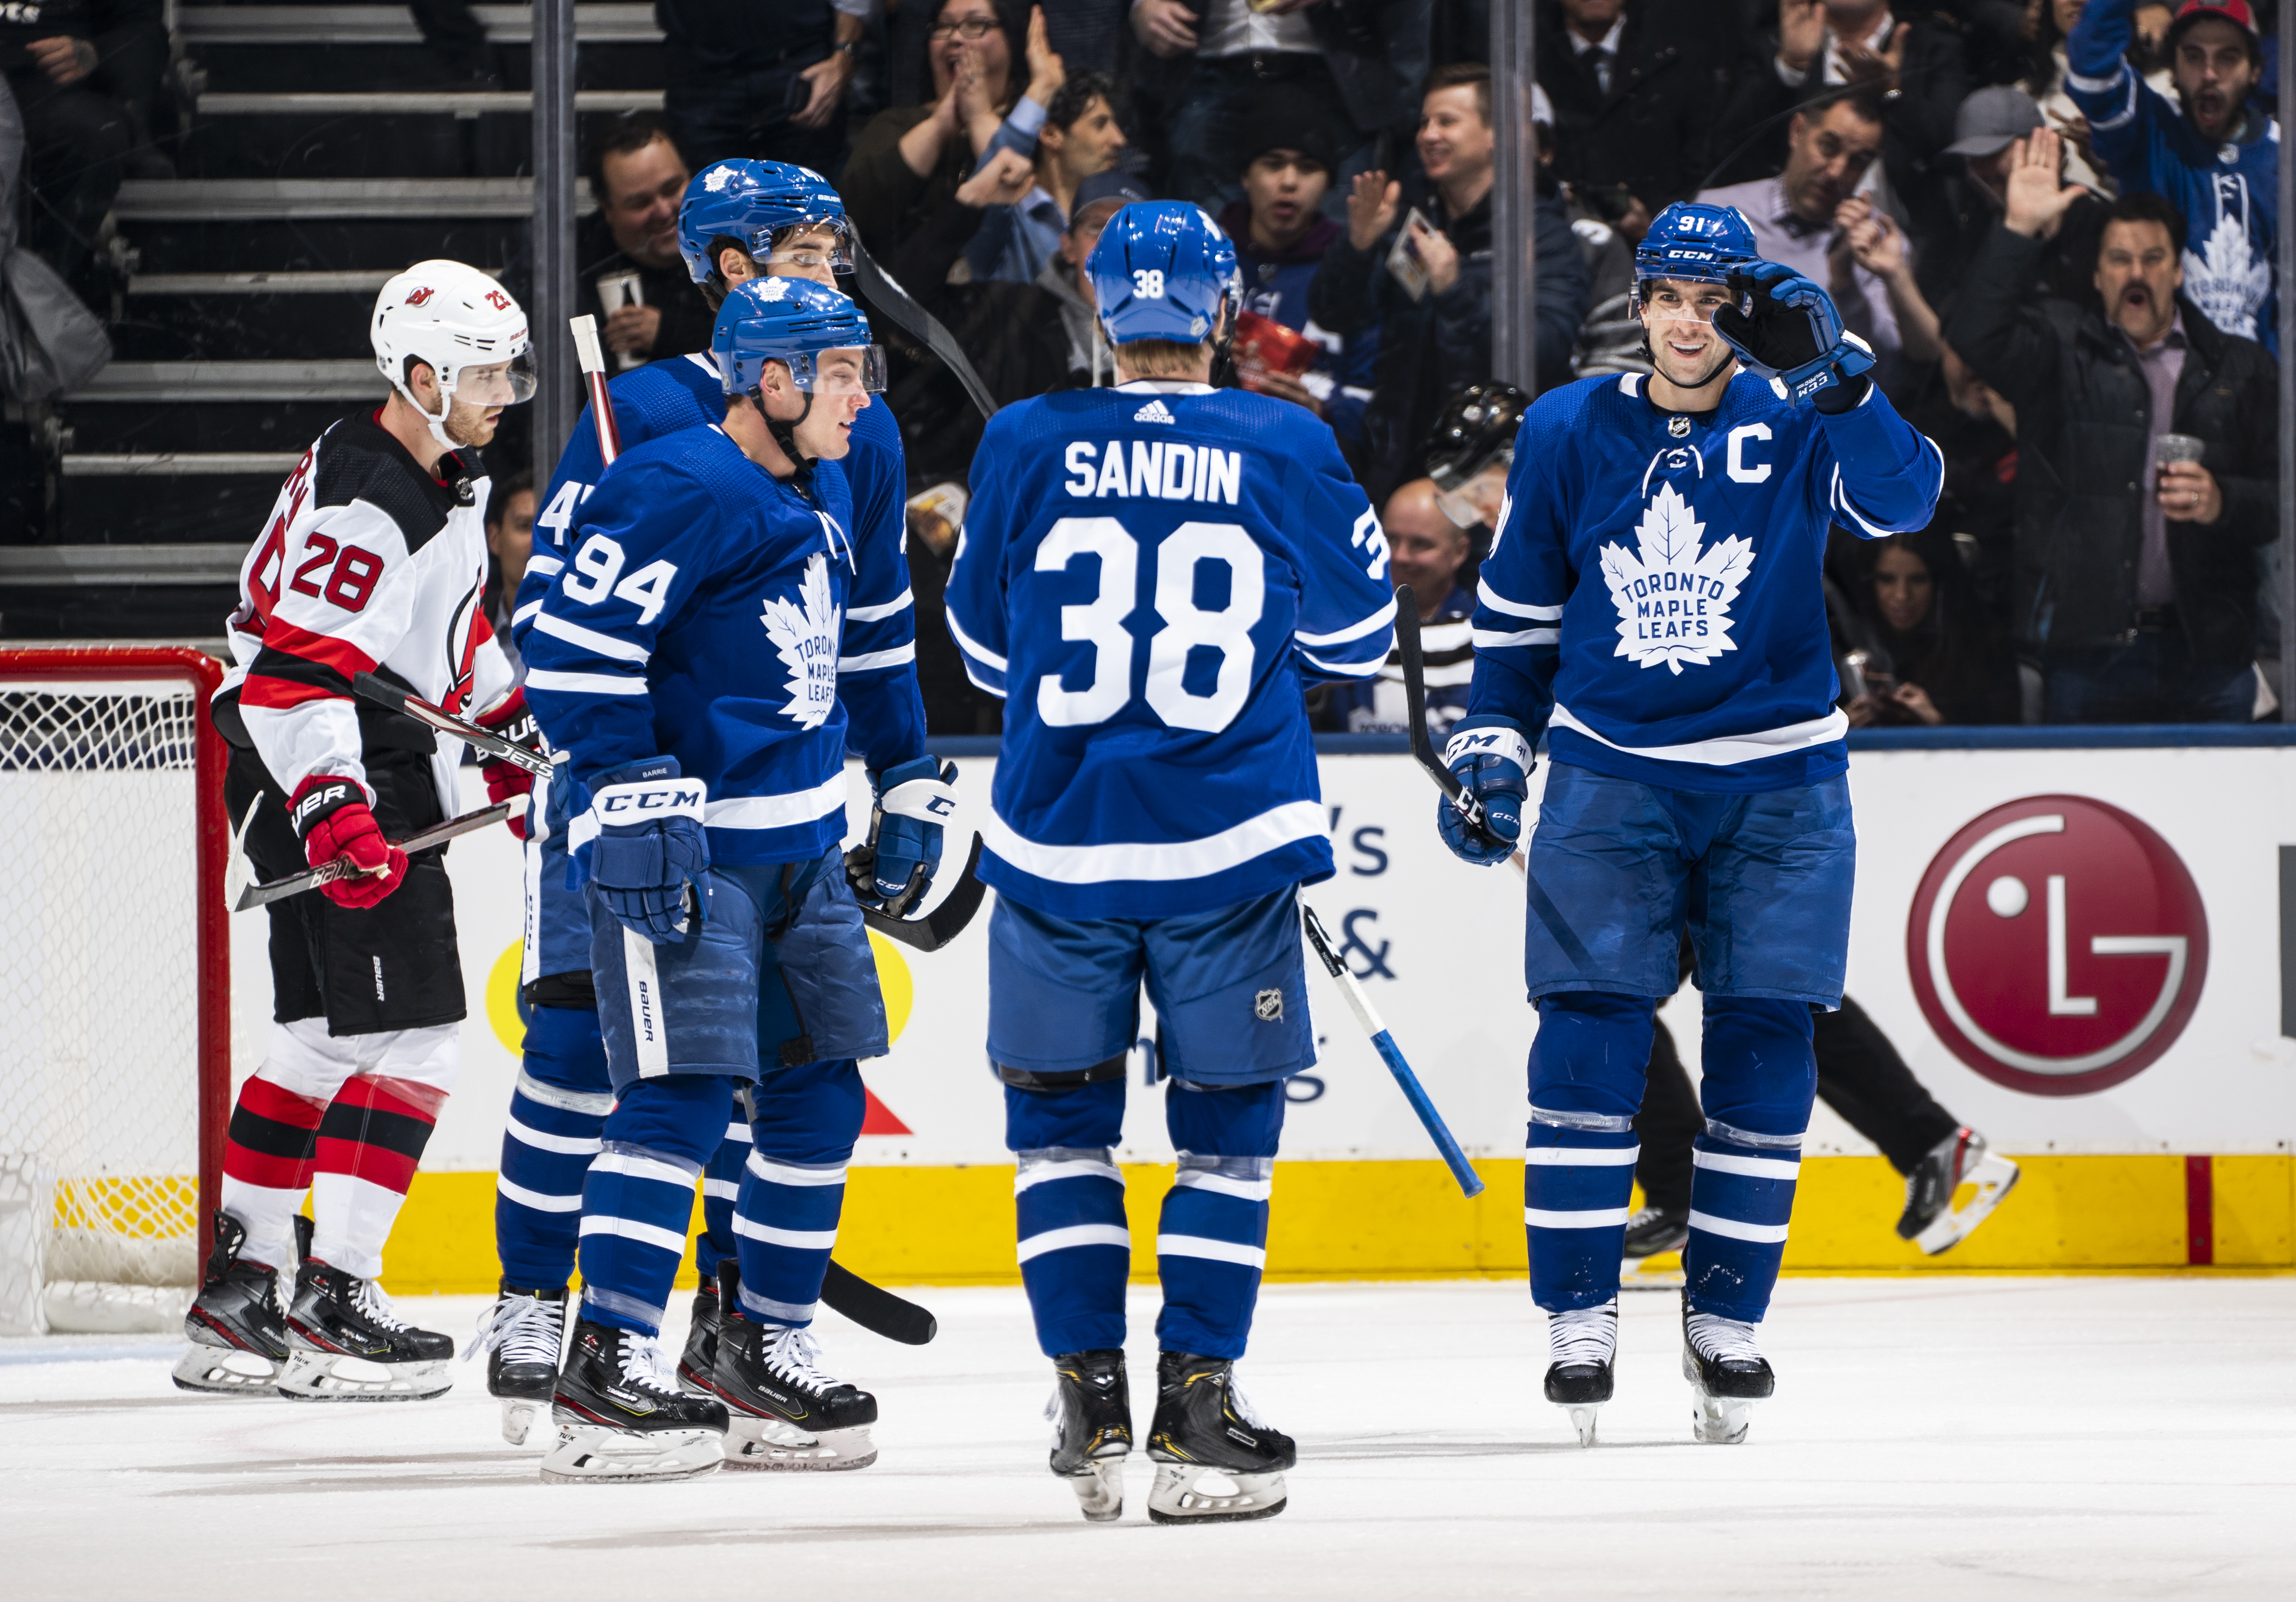 New Jersey Devils v Toronto Maple Leafs